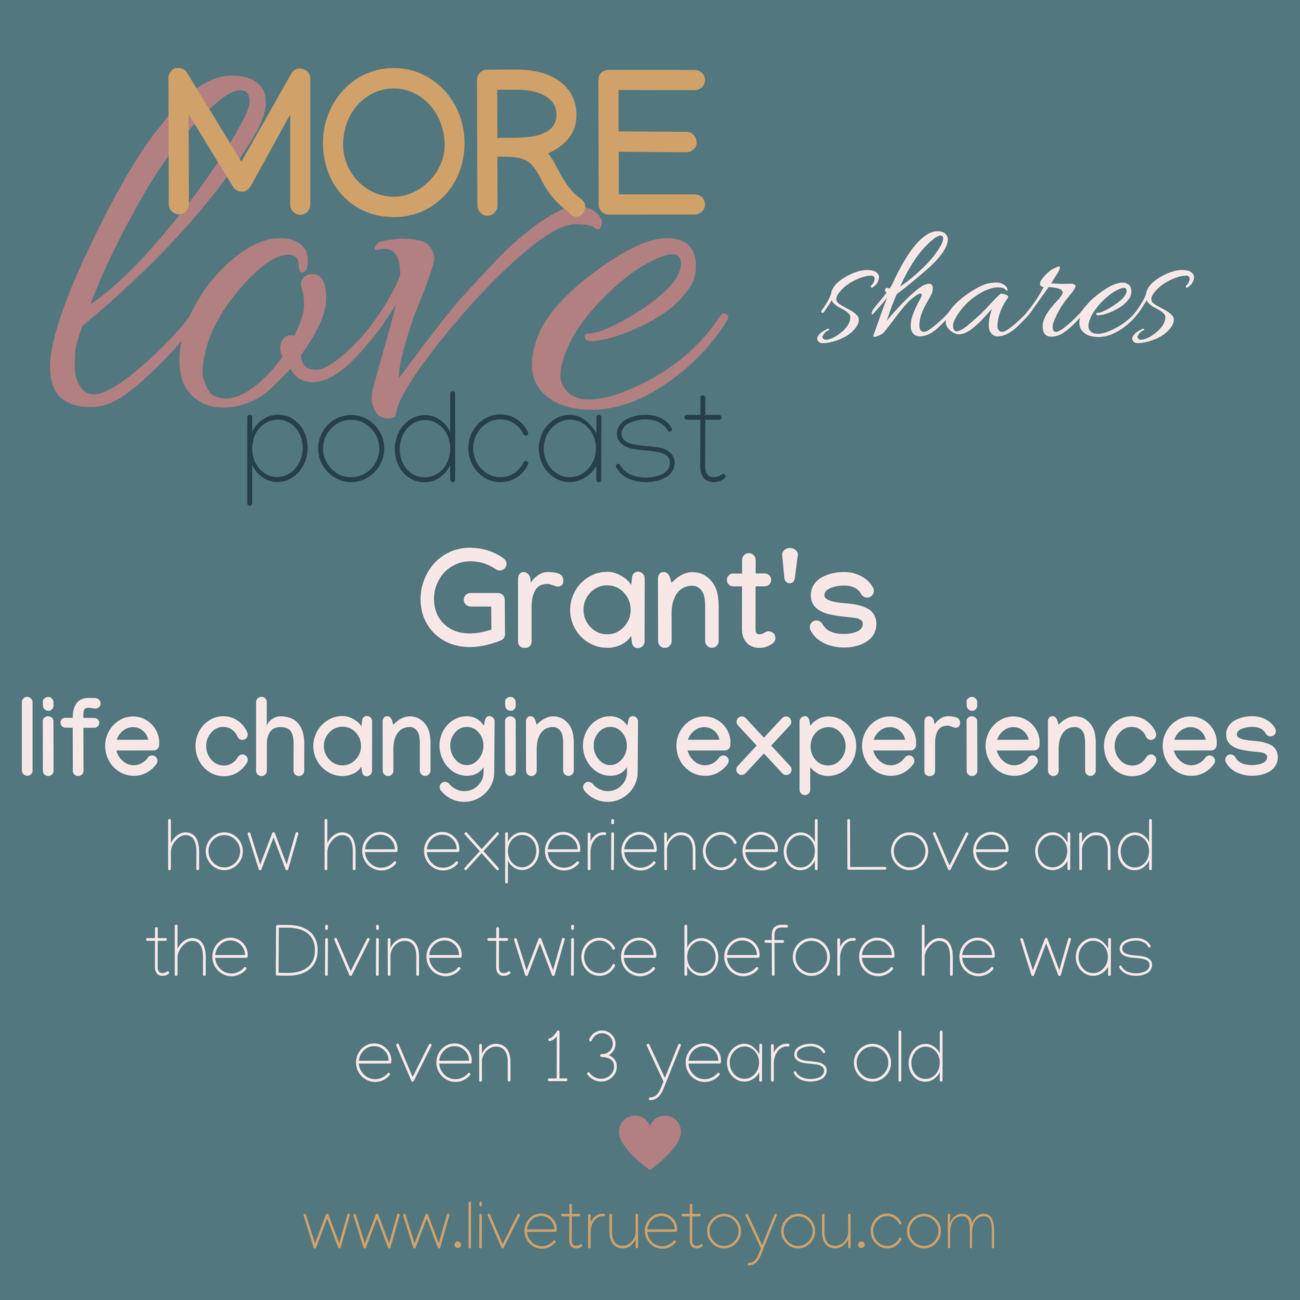 Grant's life changing experiences - how he experienced Love and the Divine twice before he was even 13 years old